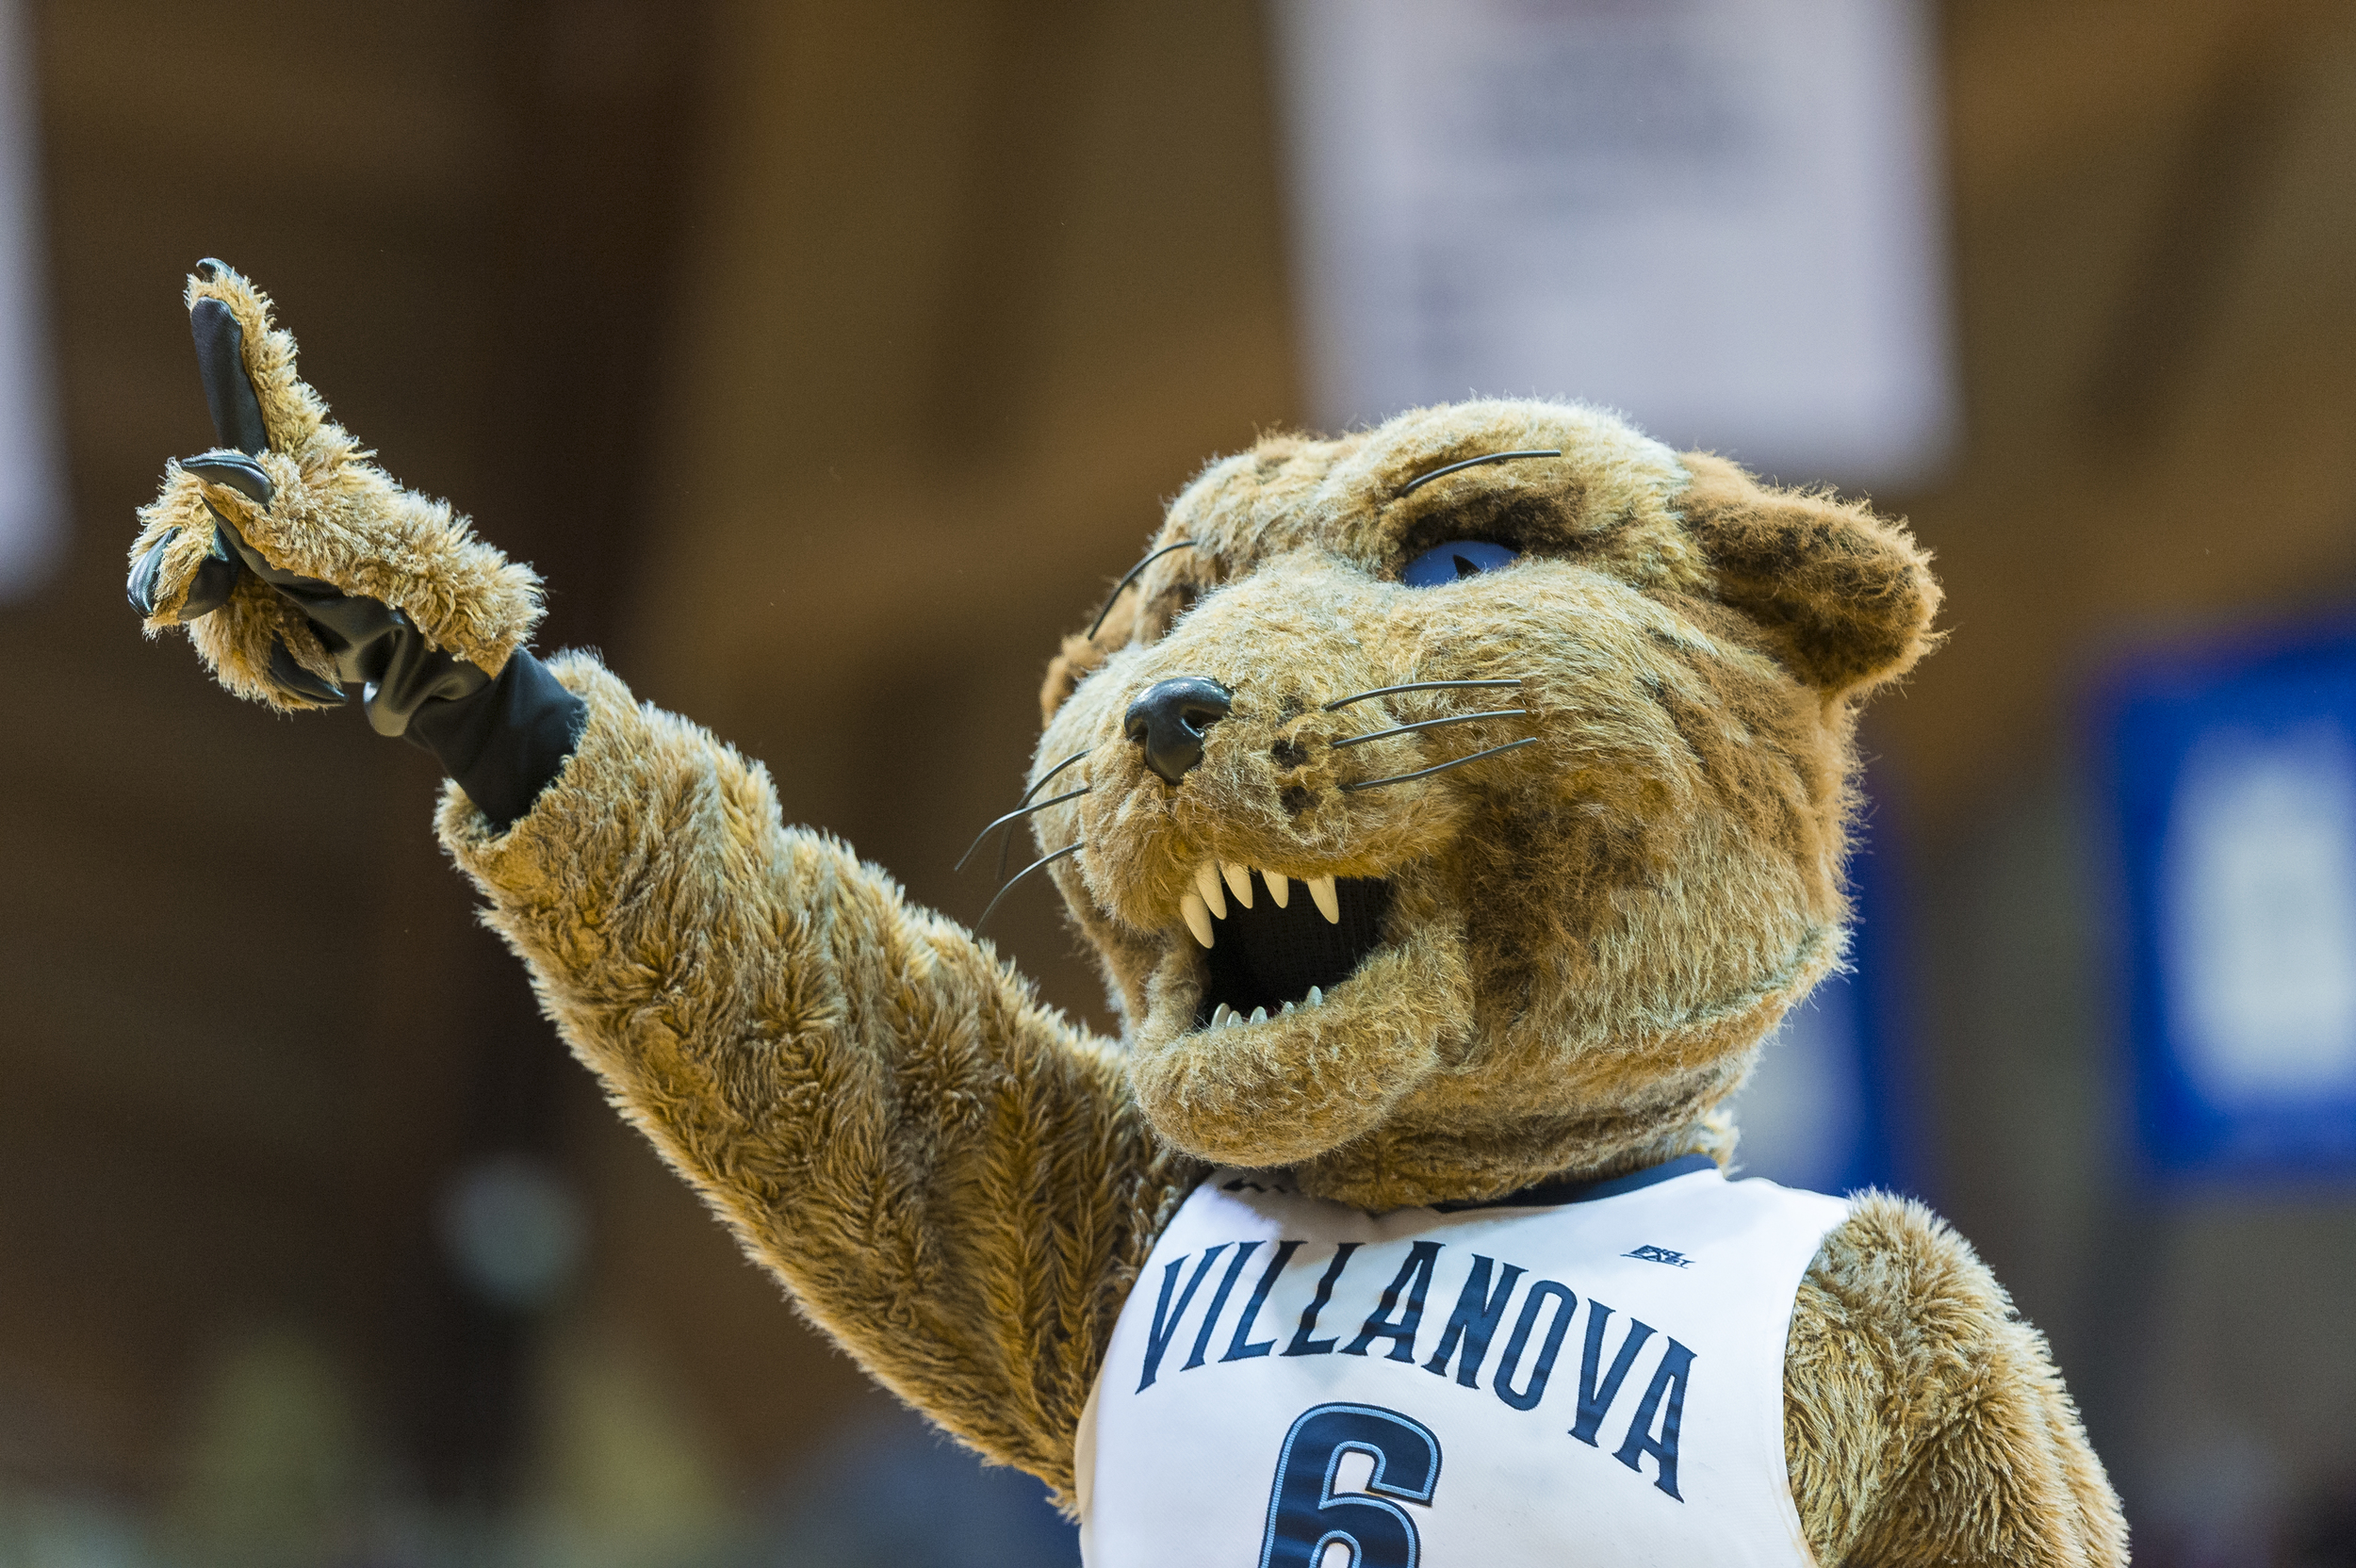 01 March 2016: The Villanova mascot shows the crowd who's number one  during the NCAA basketball game between the DePaul Blue Demons and the Villanova Wildcats played at the Pavilion in Villanova, PA. (Photo by Gavin Baker/Icon Sportswire)